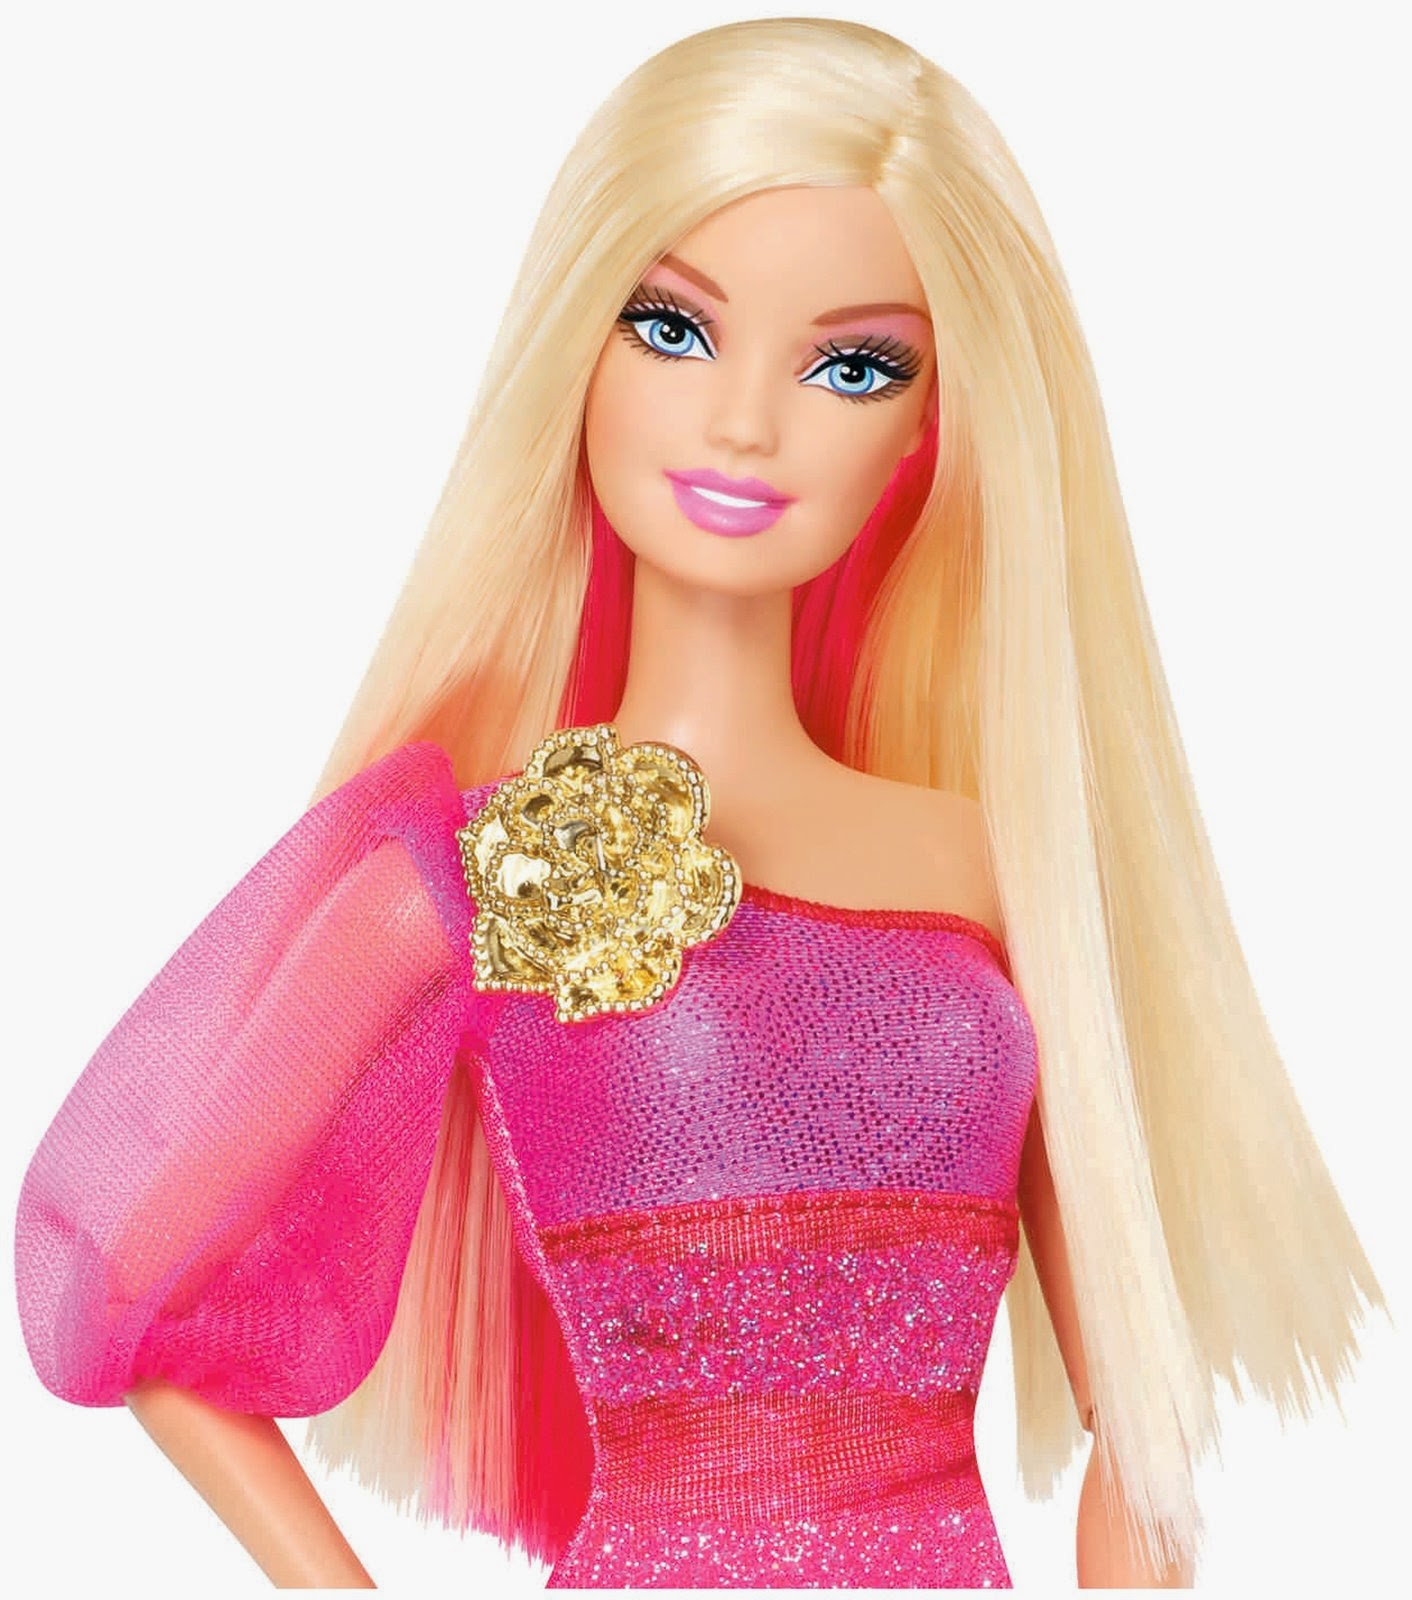 barbie doll hd photos barbie doll hd photos barbie doll 1412x1600